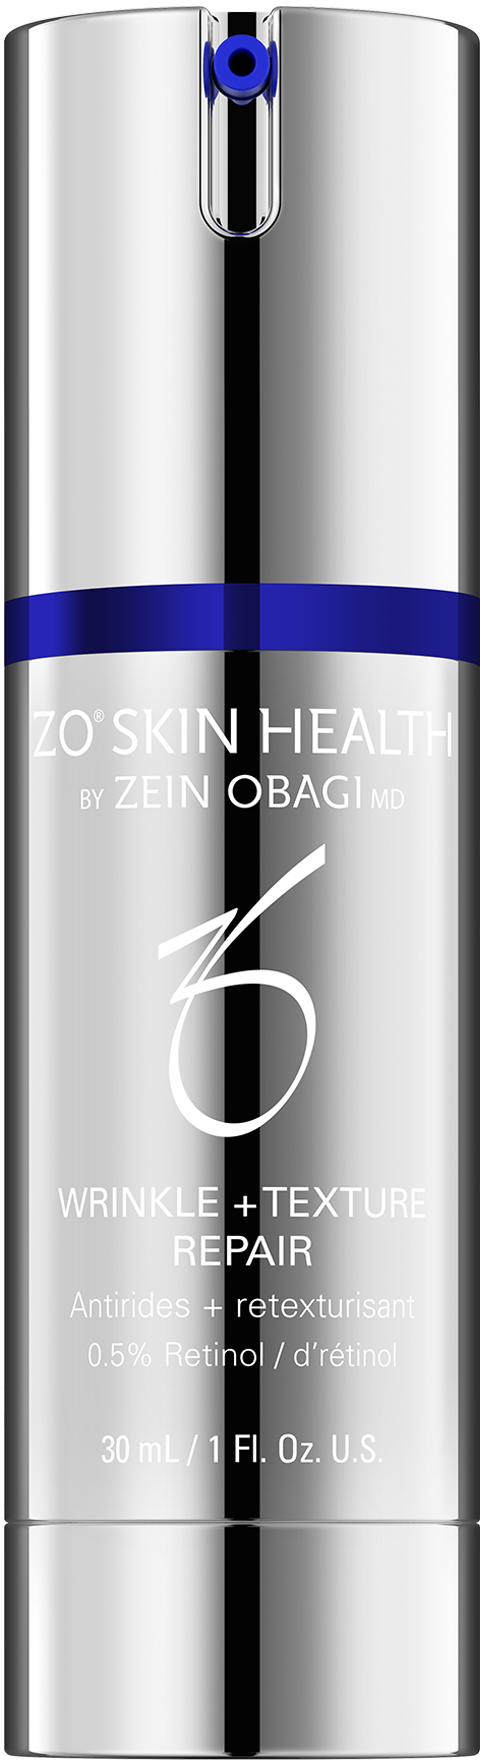 Zo Skin Health - Wrinkle + Texture Repair (formerly RetamaxTM)